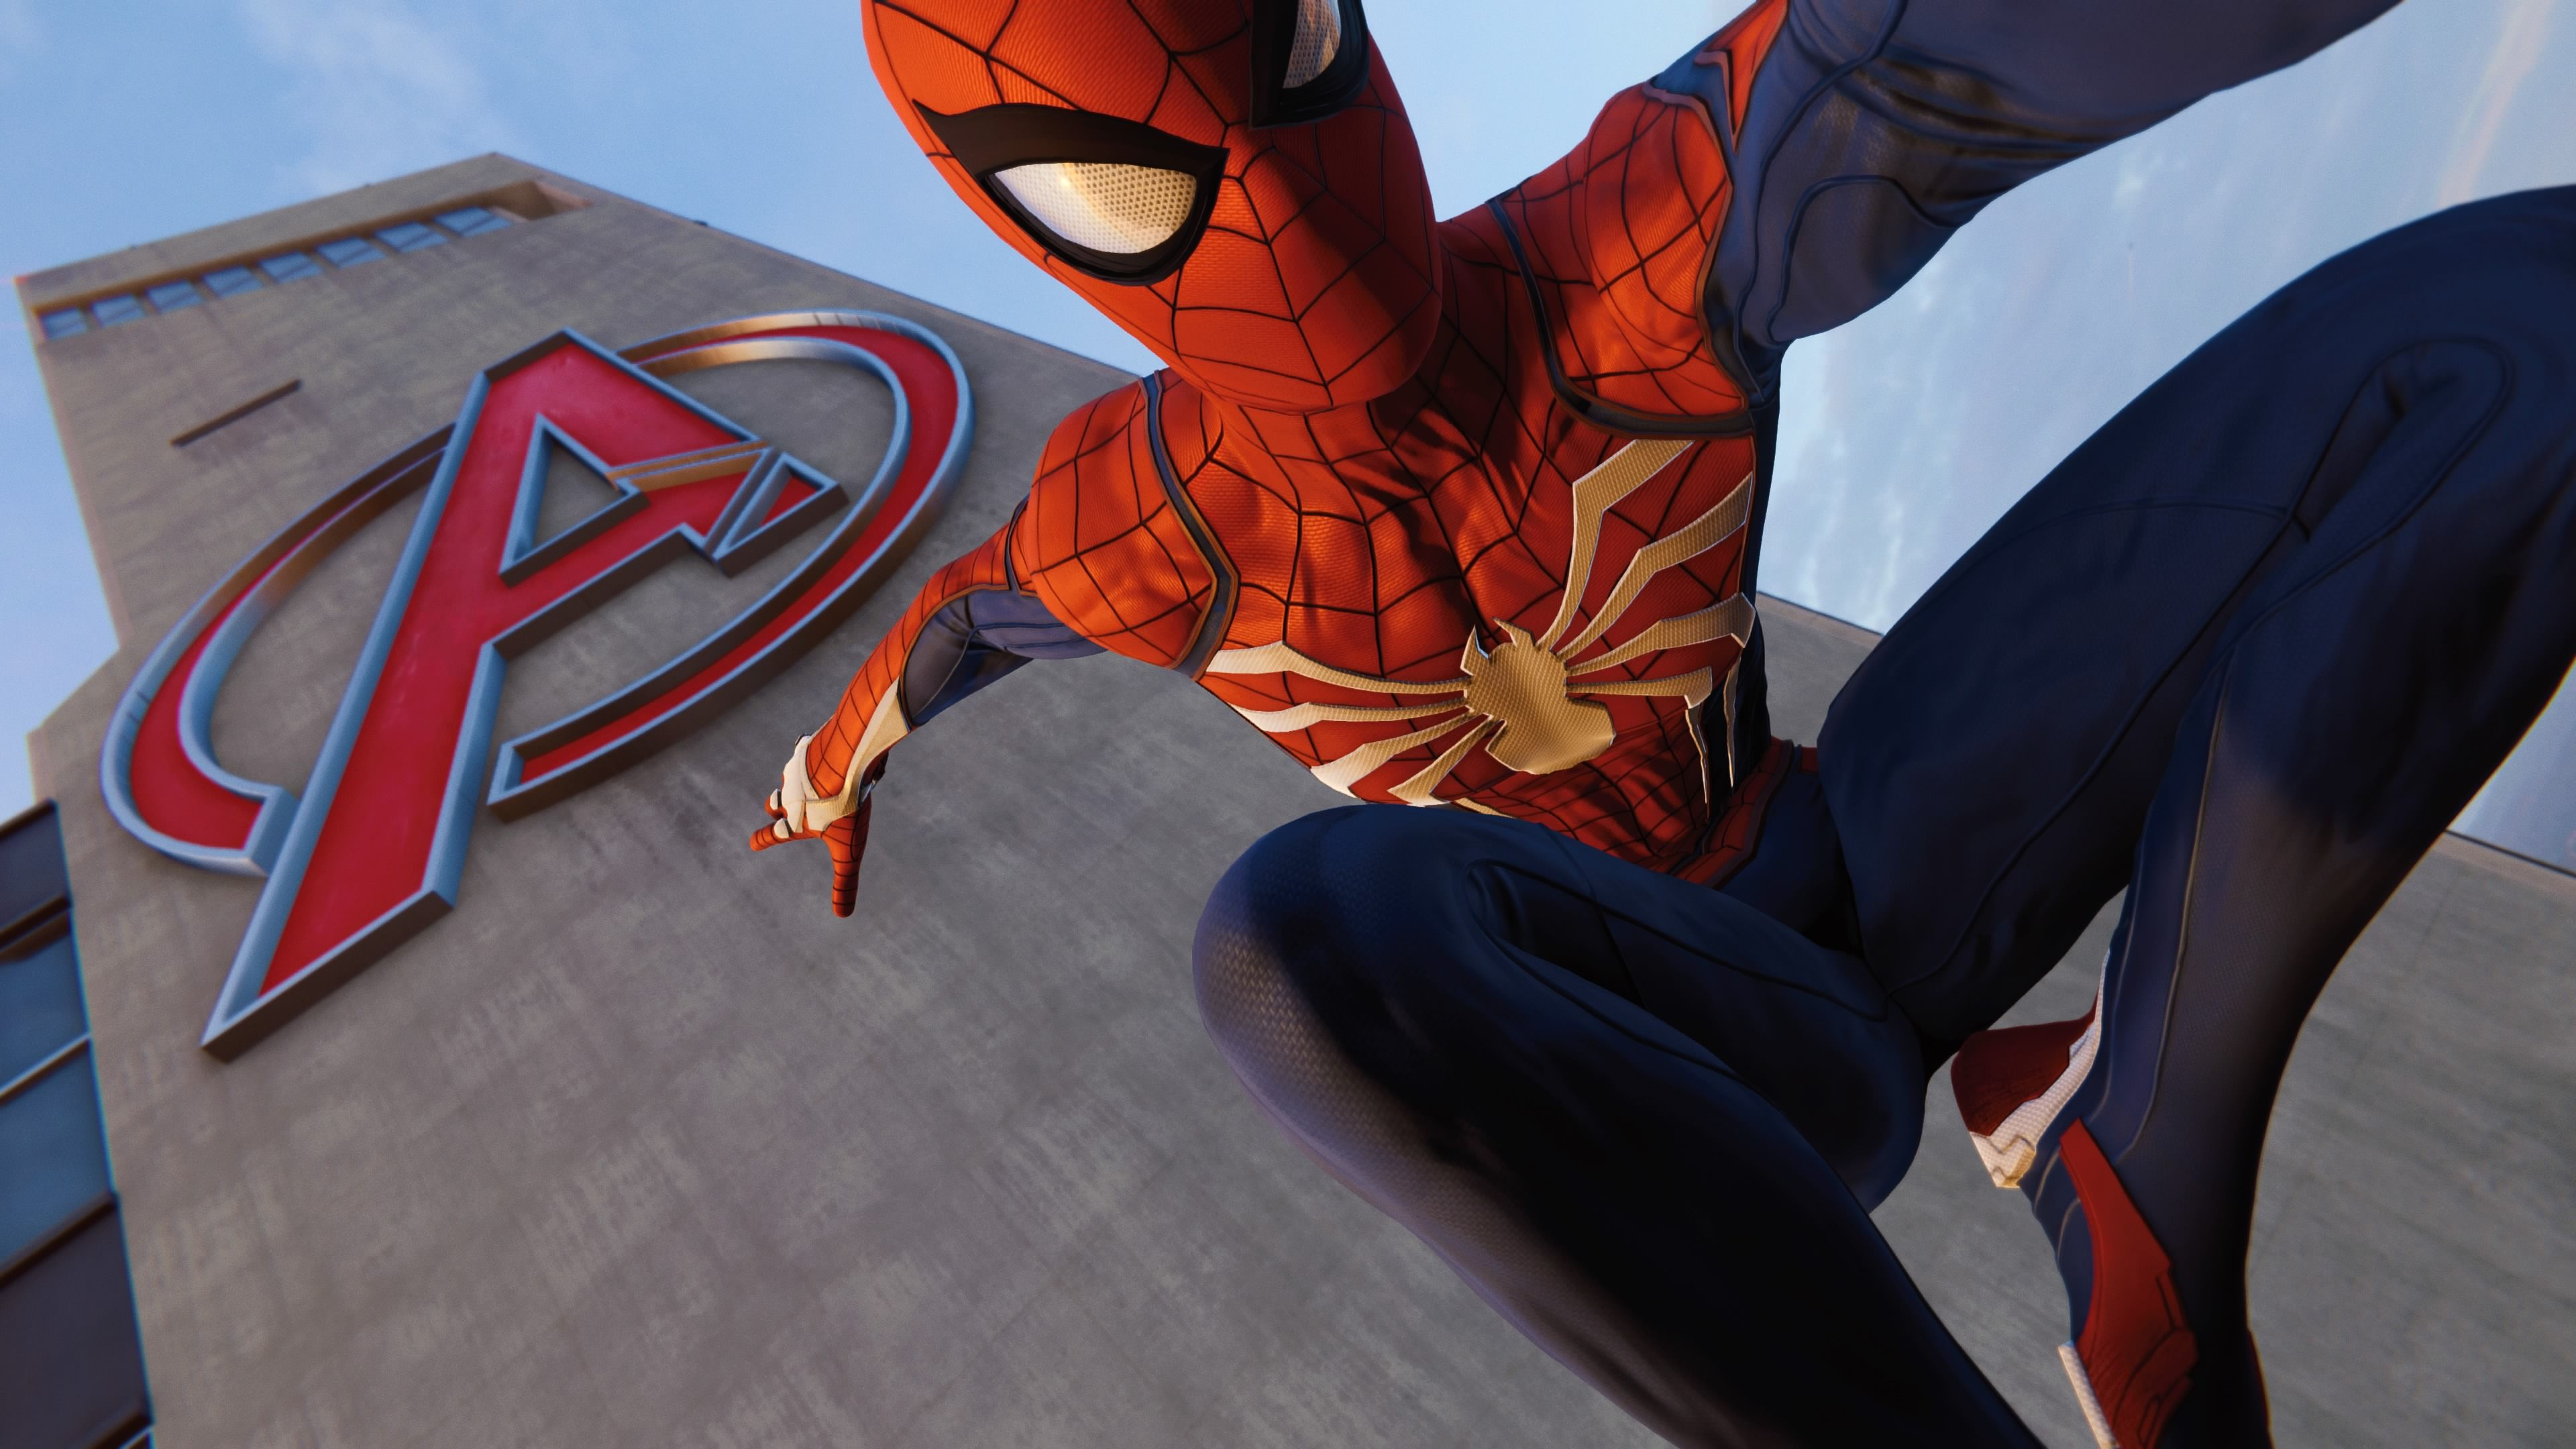 Ps4 Pro Spiderman Avengers Tower Superheroes Wallpapers Spiderman Wallpapers Spiderman Ps4 Wallpapers Ps4 Games Spiderman Spiderman Ps4 Wallpaper Superhero